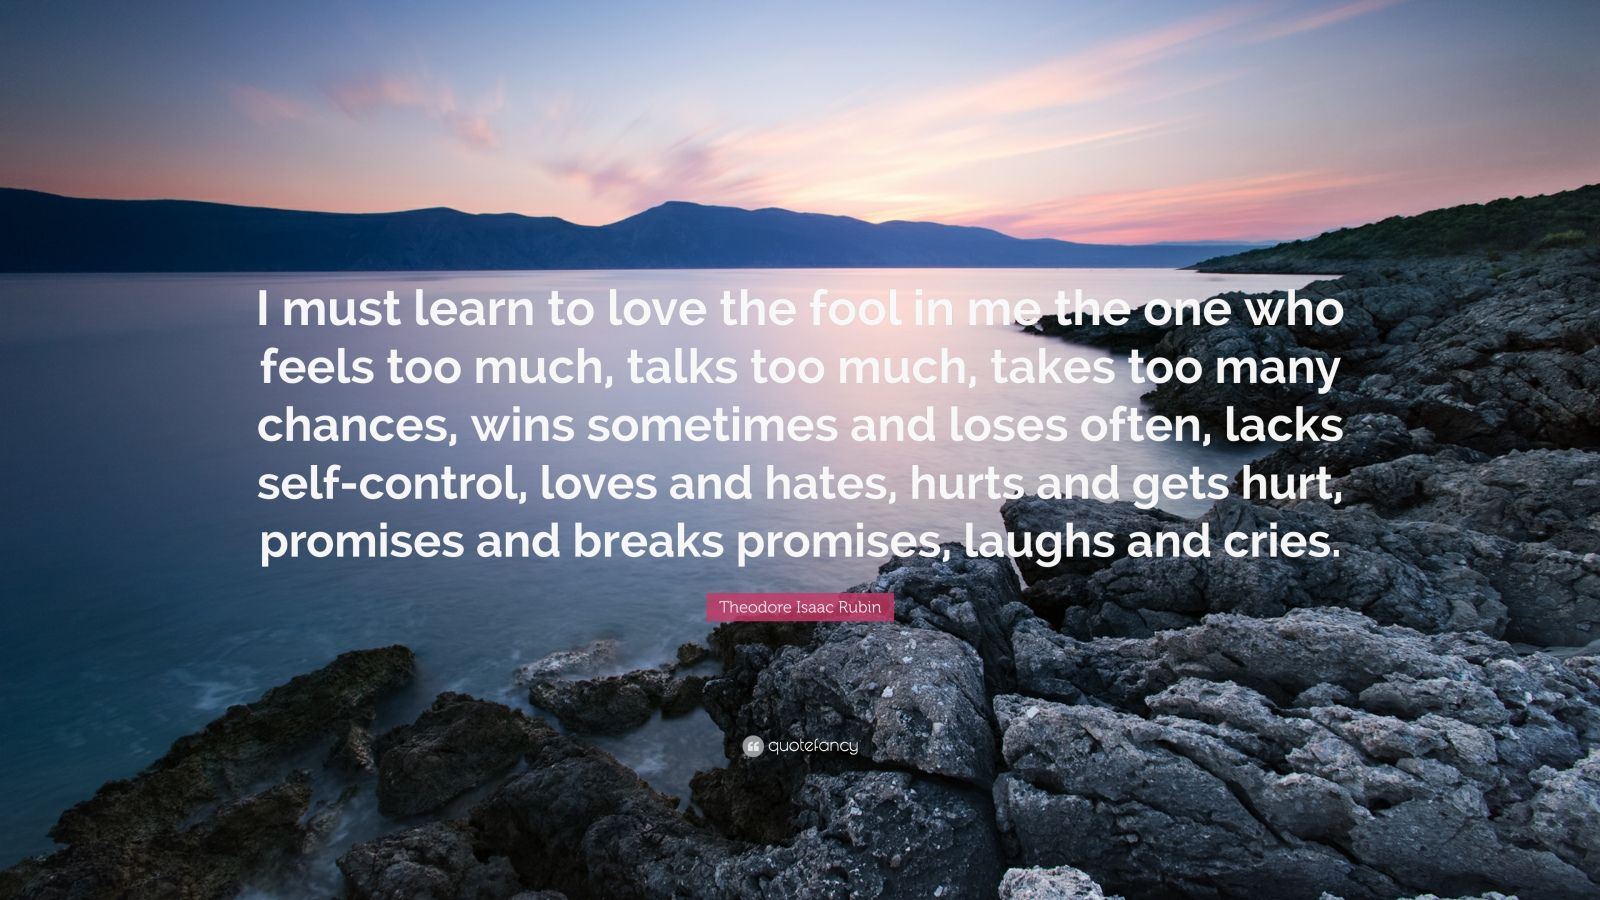 """Theodore Isaac Rubin Quote: """"I must learn to love the fool in me the one who feels too much, talks too much, takes too many chances, wins sometimes and loses often, lacks self-control, loves and hates, hurts and gets hurt, promises and breaks promises, laughs and cries."""""""